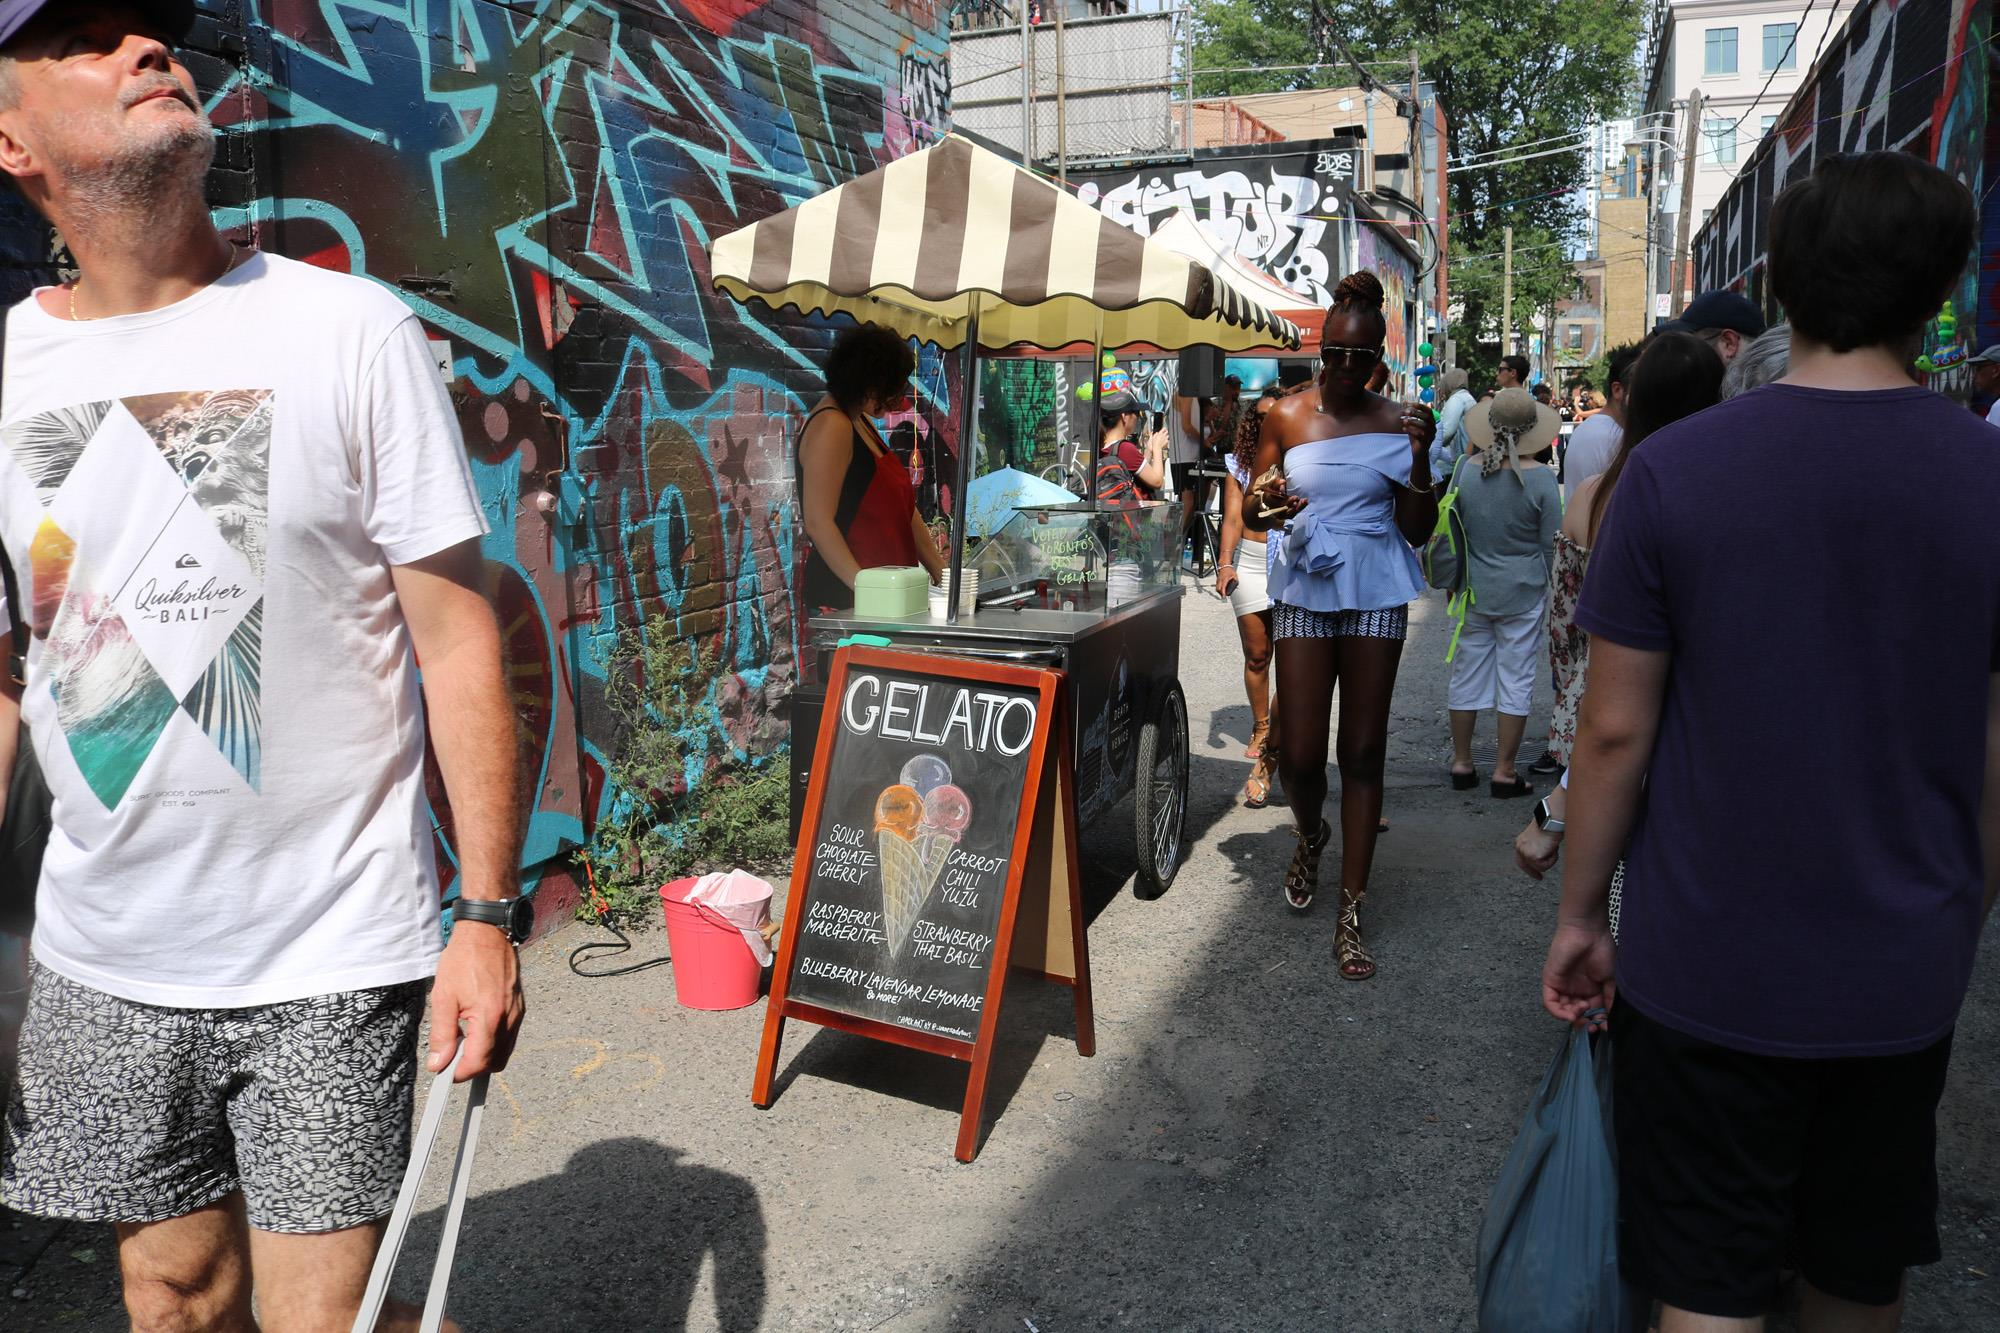 Image: Gelato in Graffiti Alley thanks to Queen Street's Death in Venice CREDIT Katrina Afonso